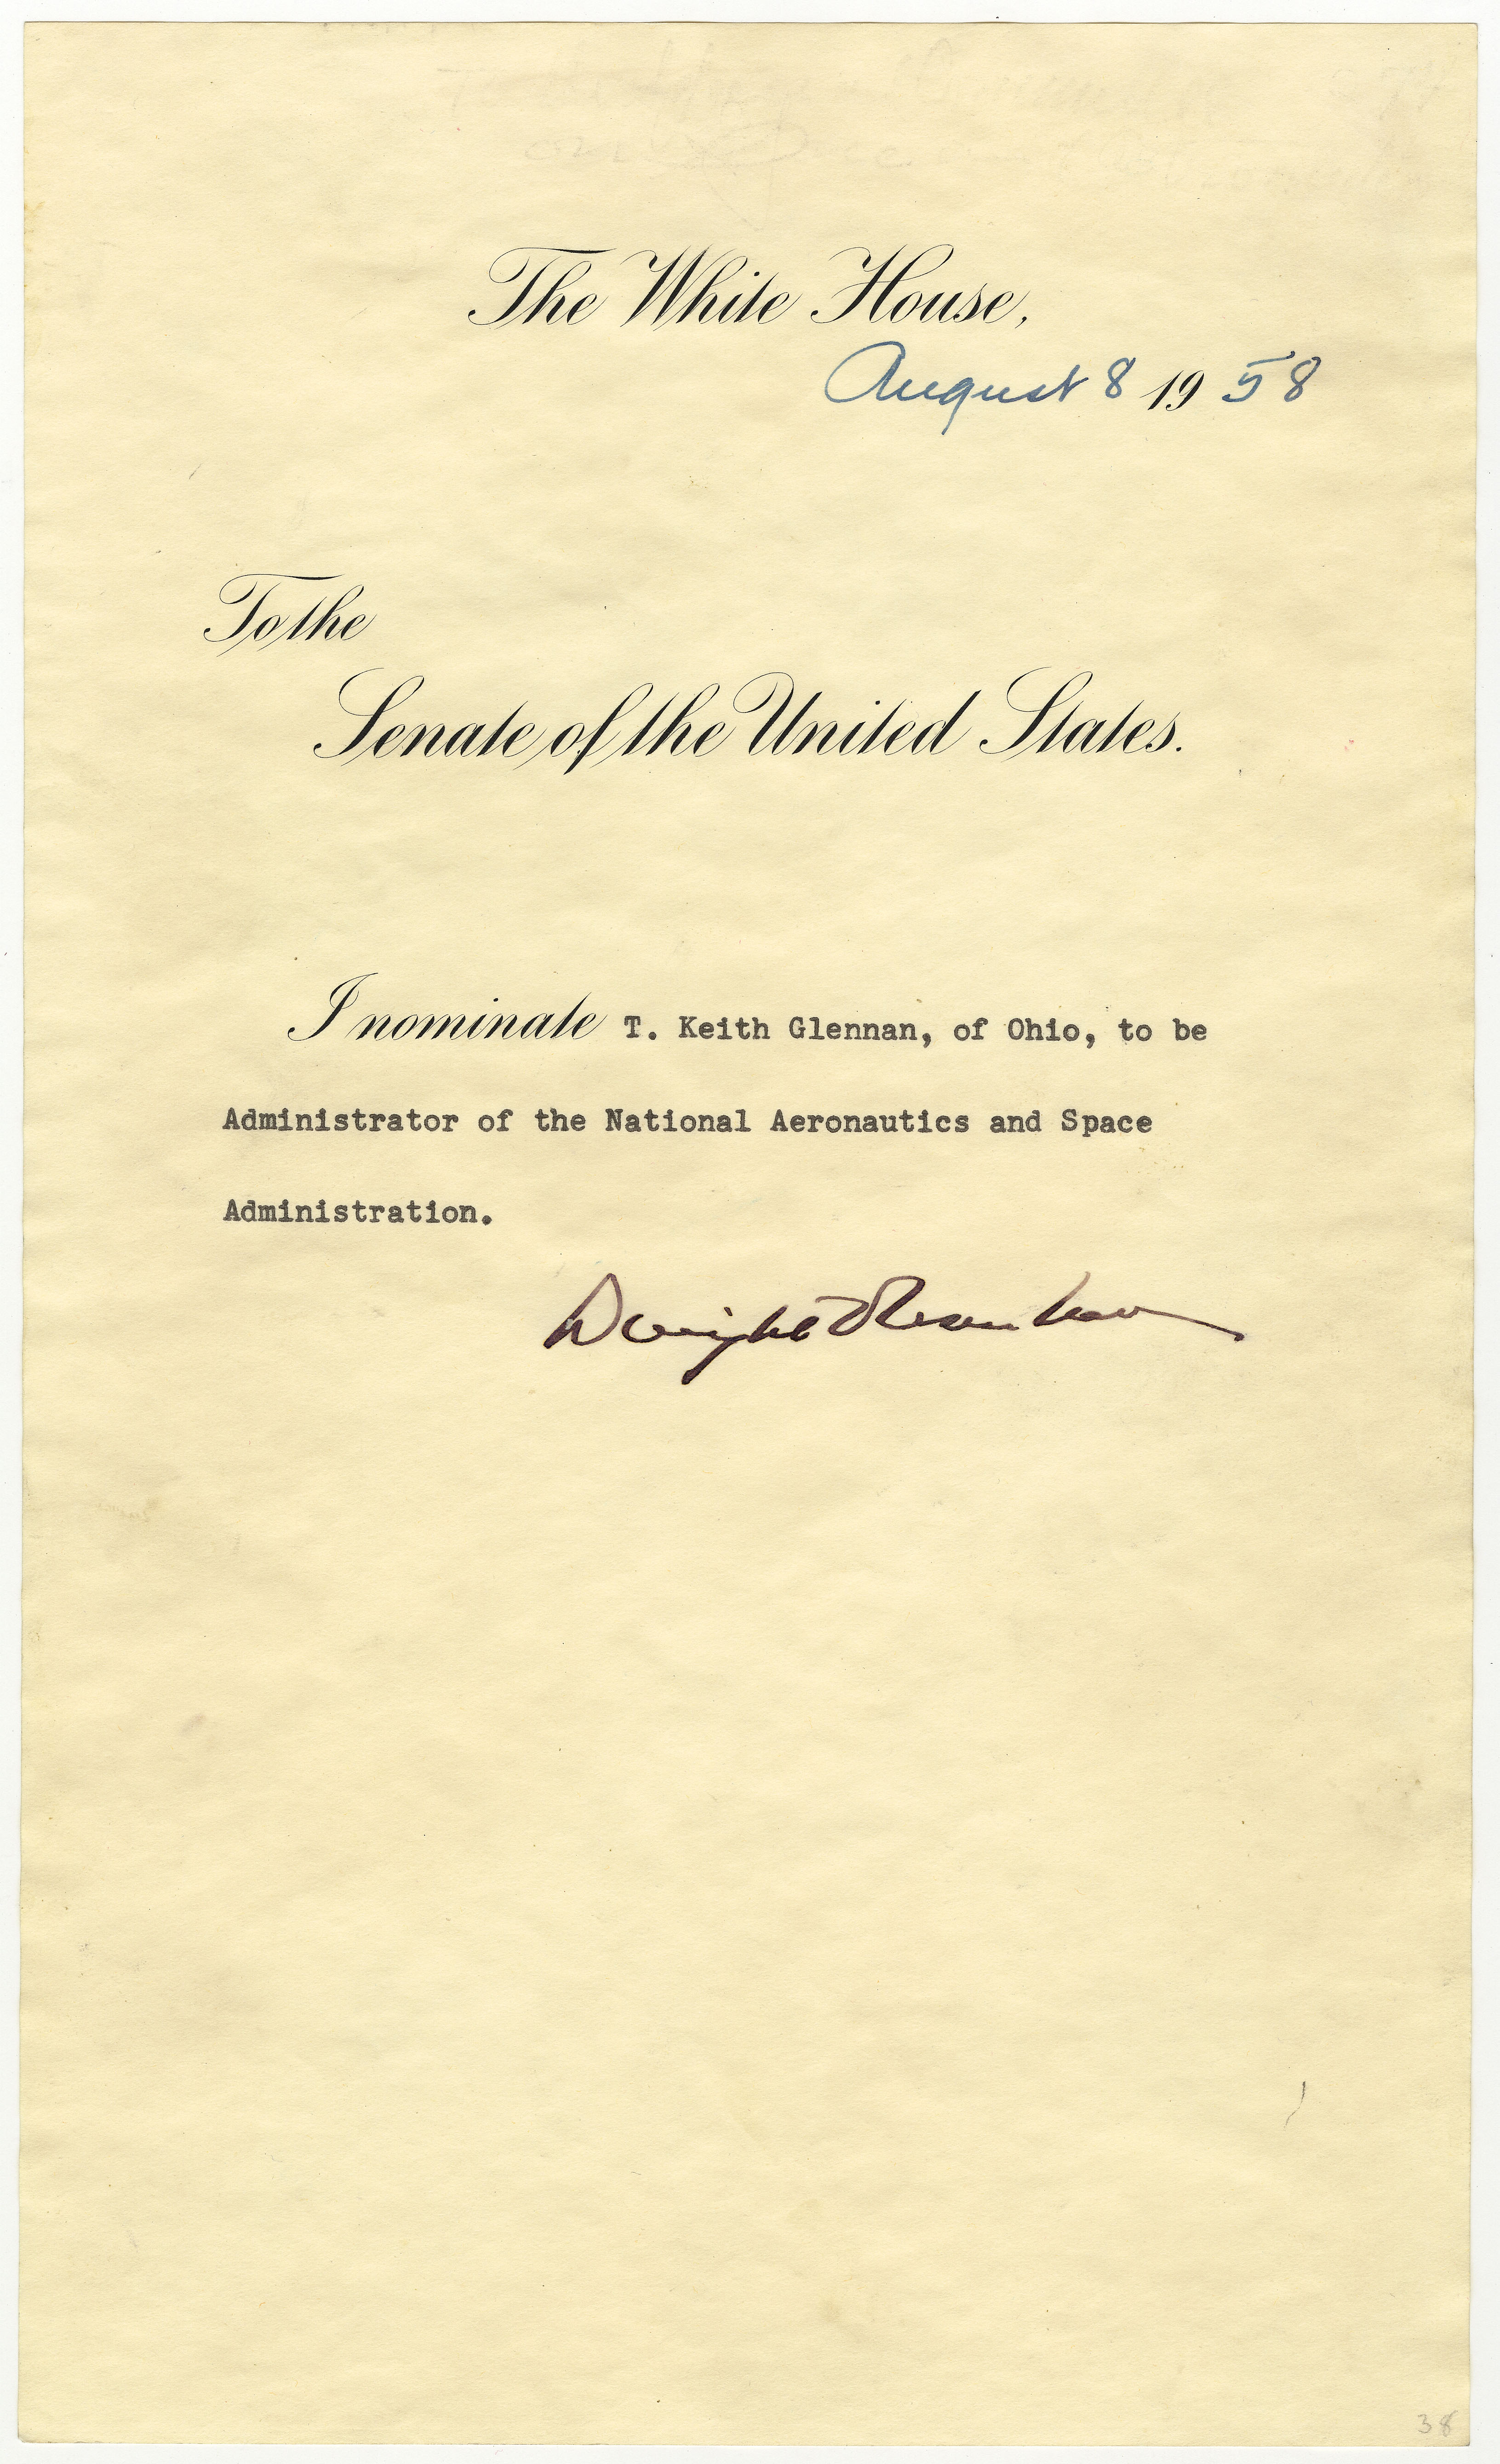 Message of President Dwight D. Eisenhower nominating T. Keith Gl